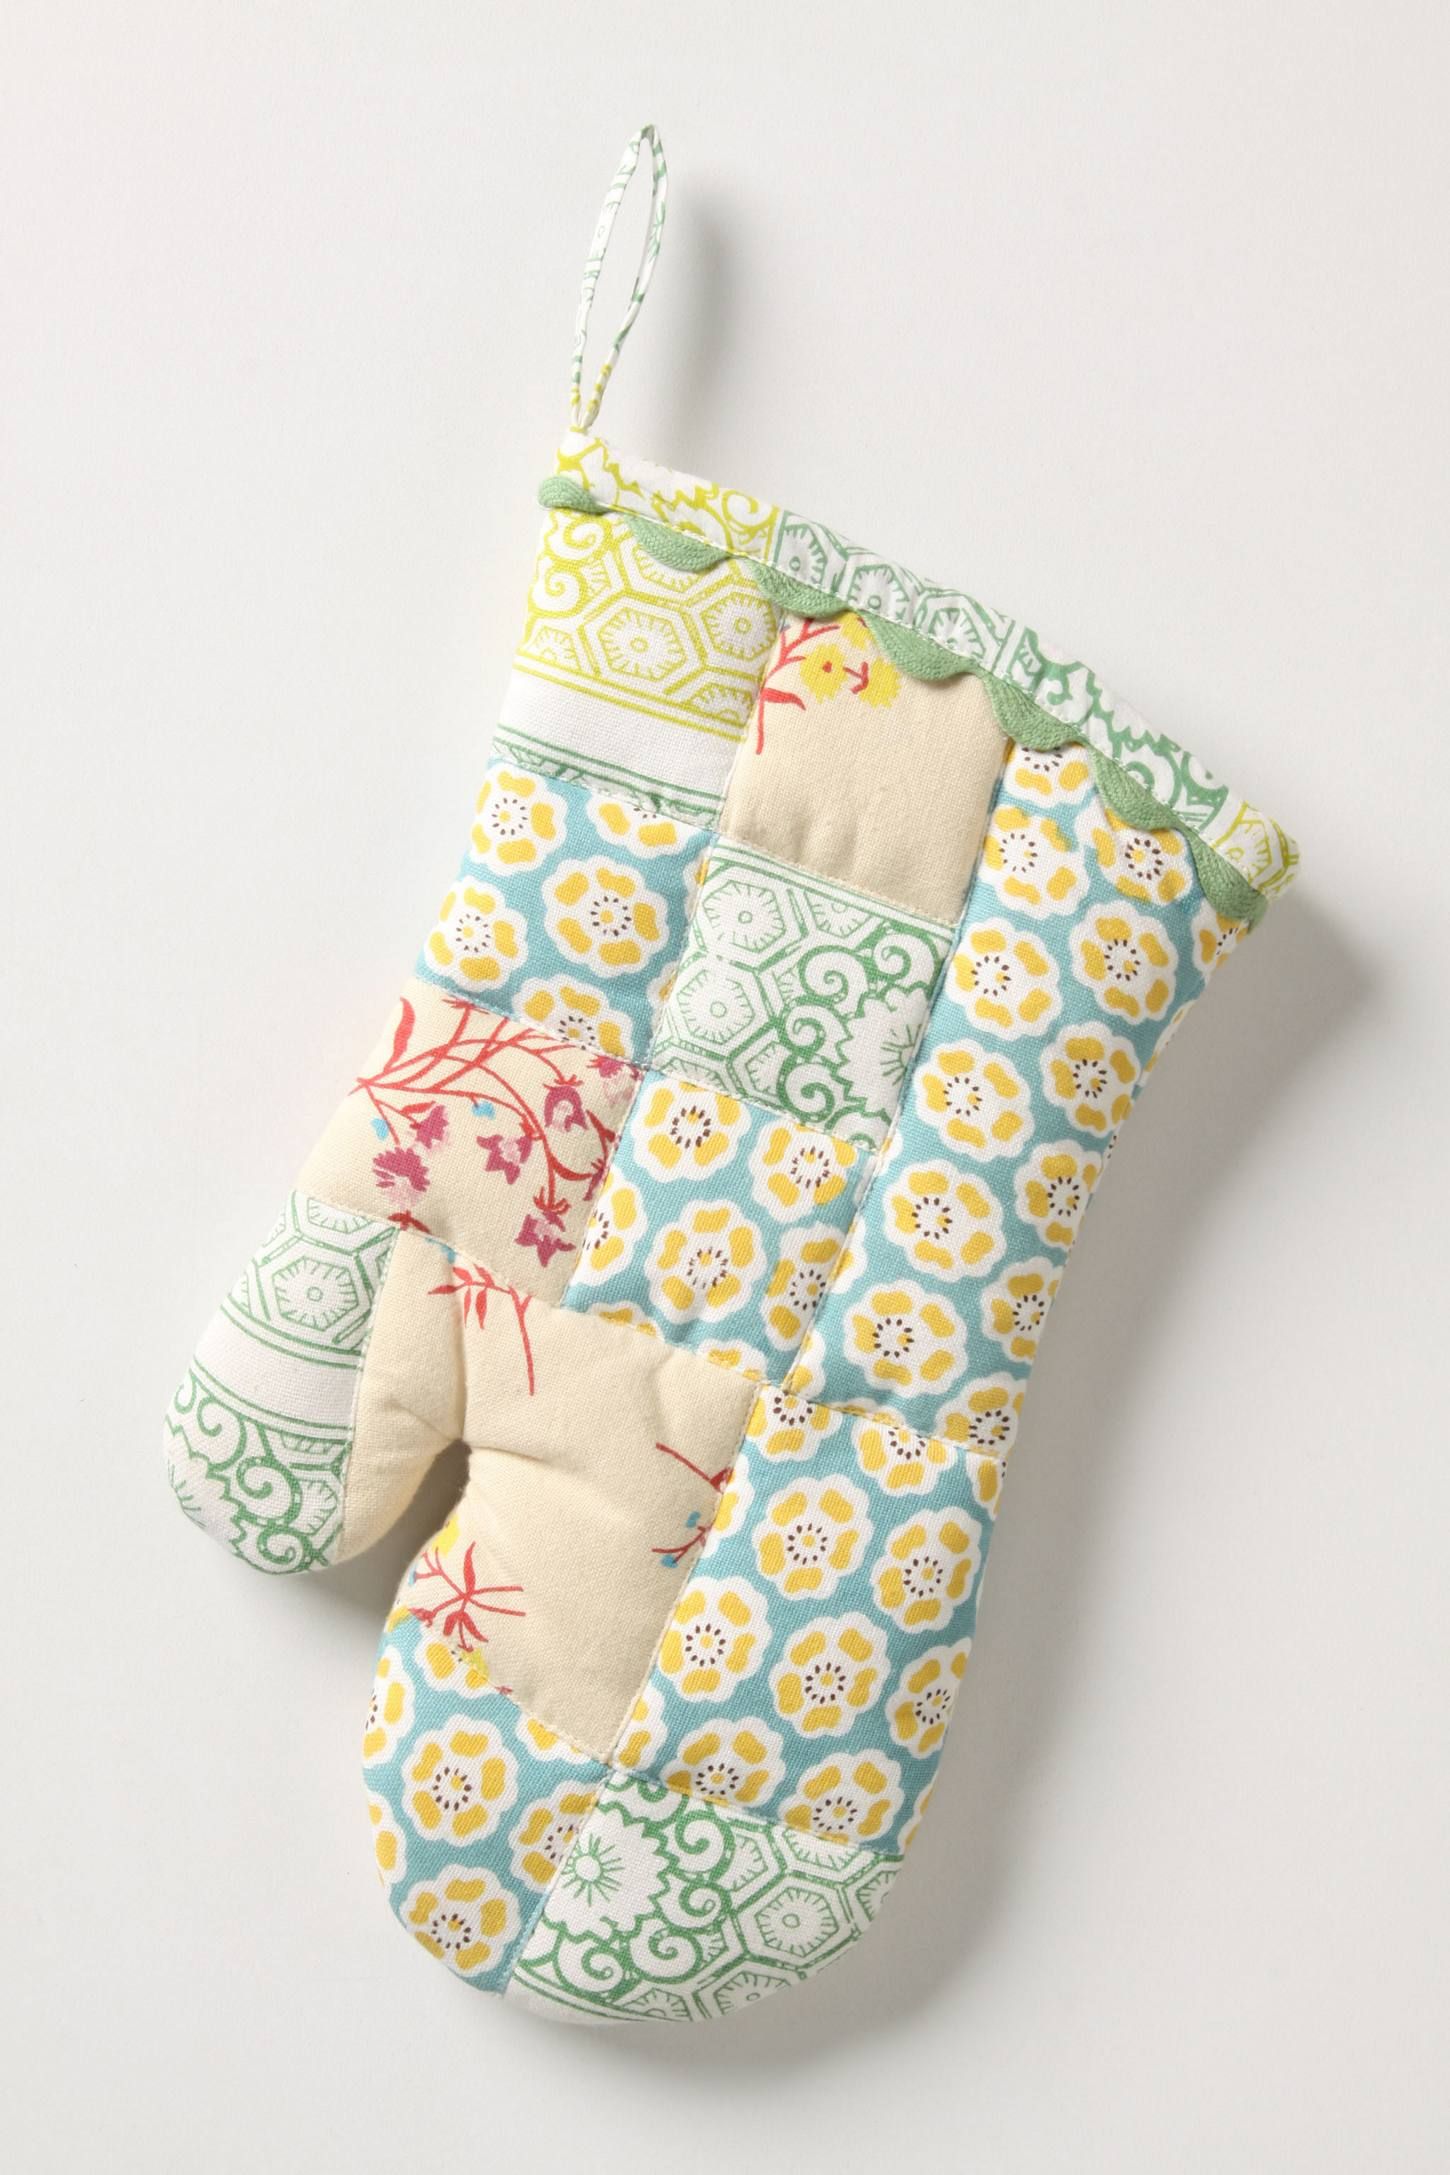 Sewing Basket Oven Mitt